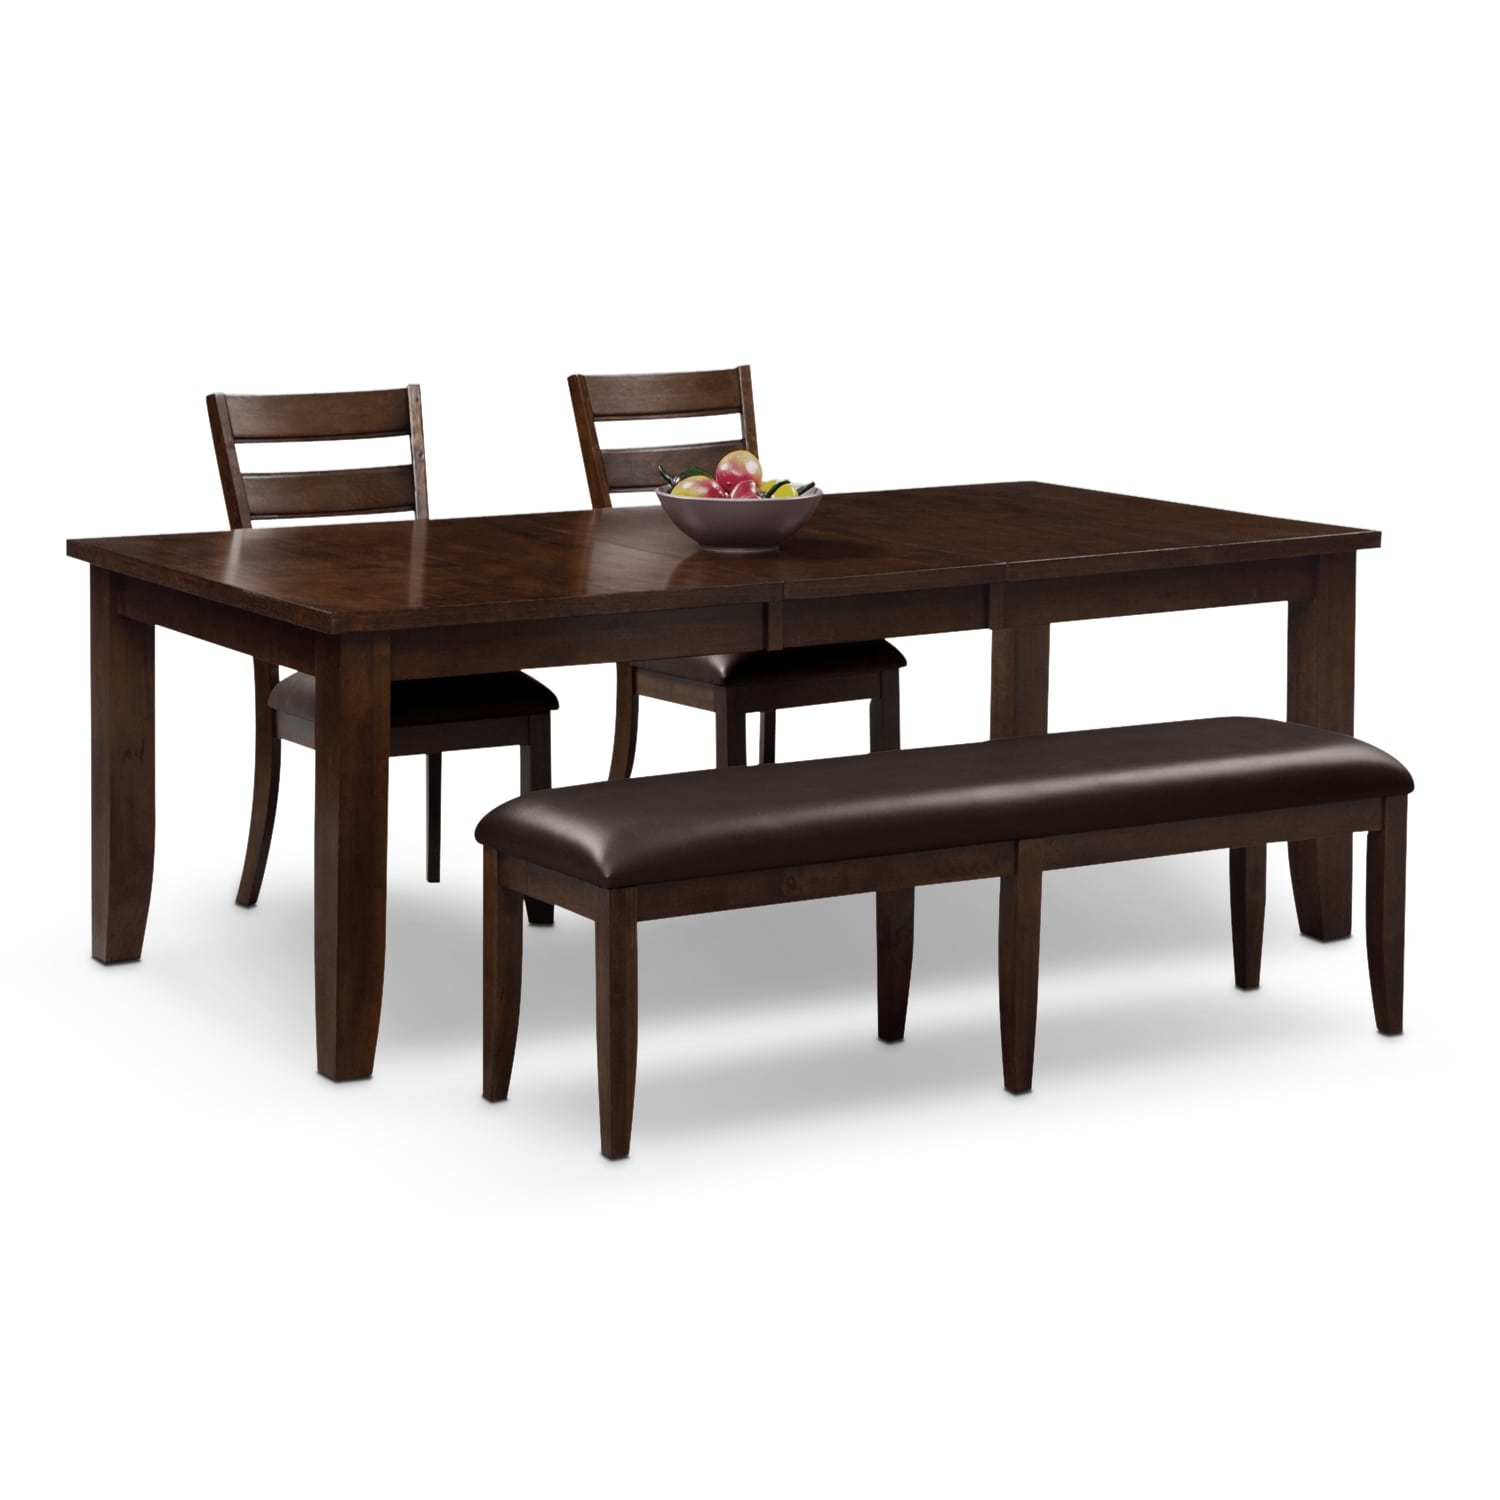 Abaco table 2 chairs and bench brown value city furniture for 2 dining room tables